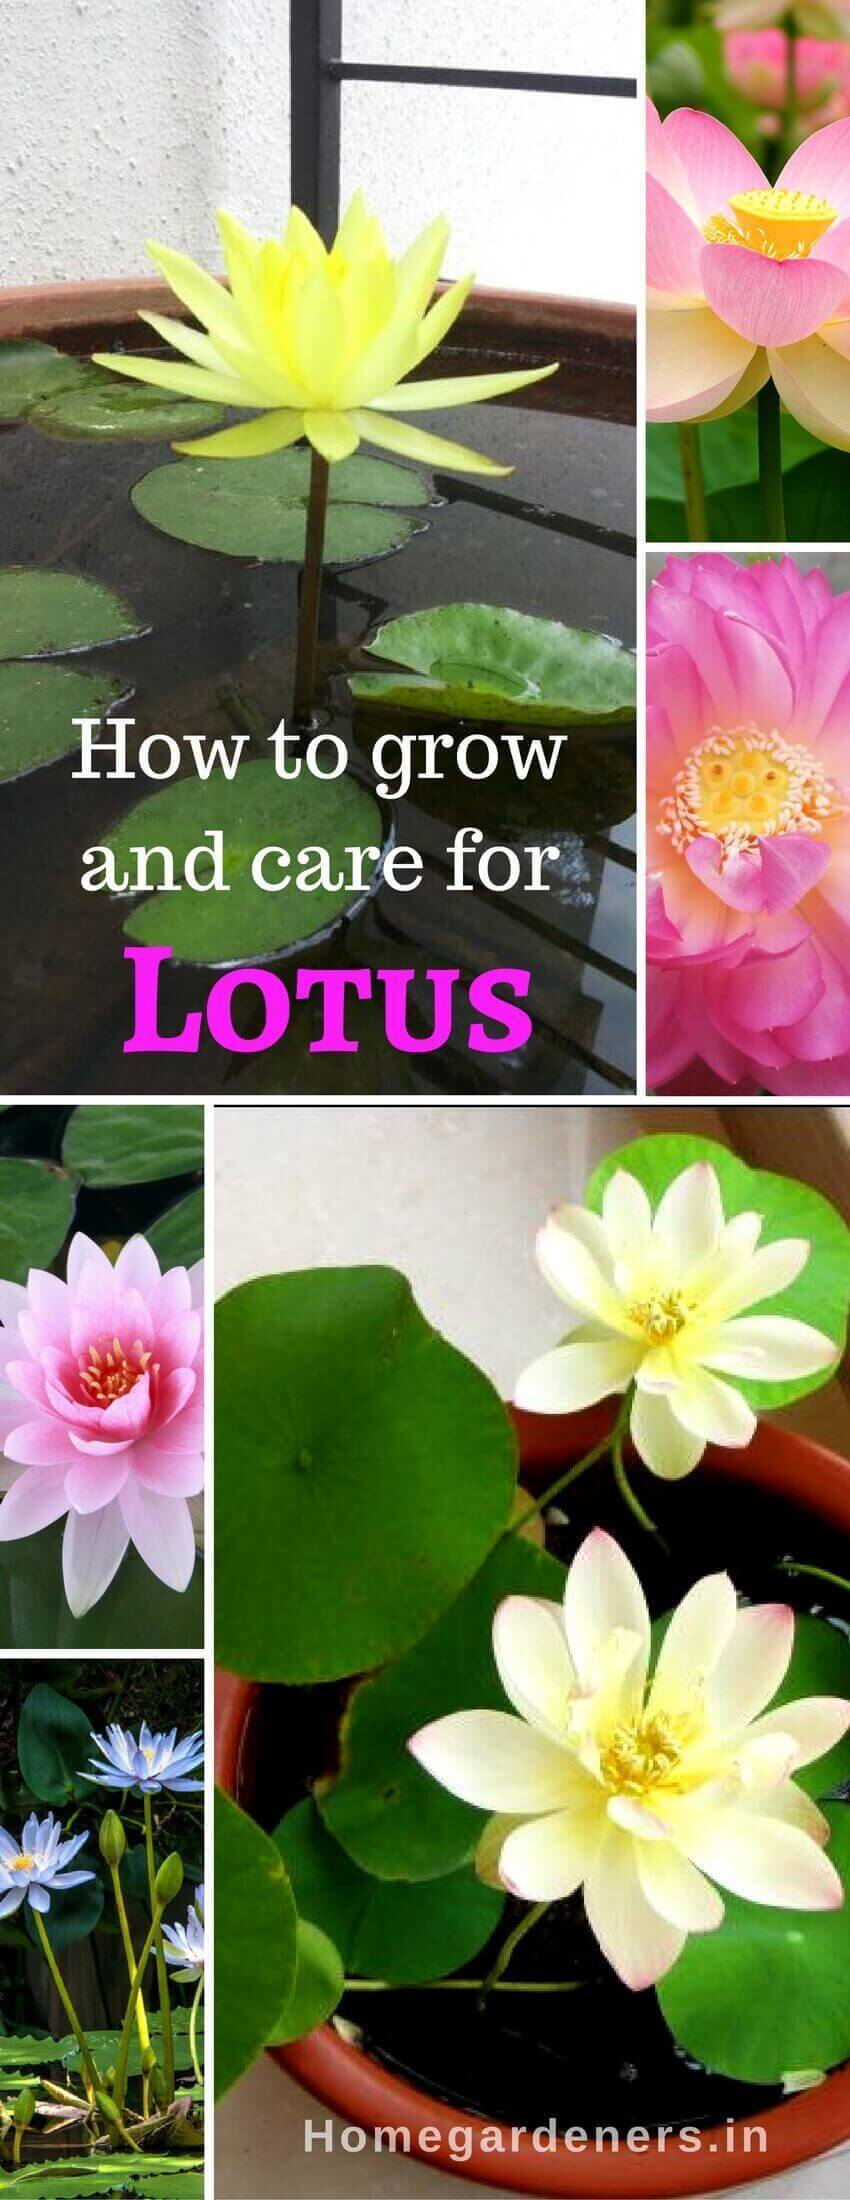 Sacred Lotus How To Grow And Care For Lotus Plants Home Gardeners